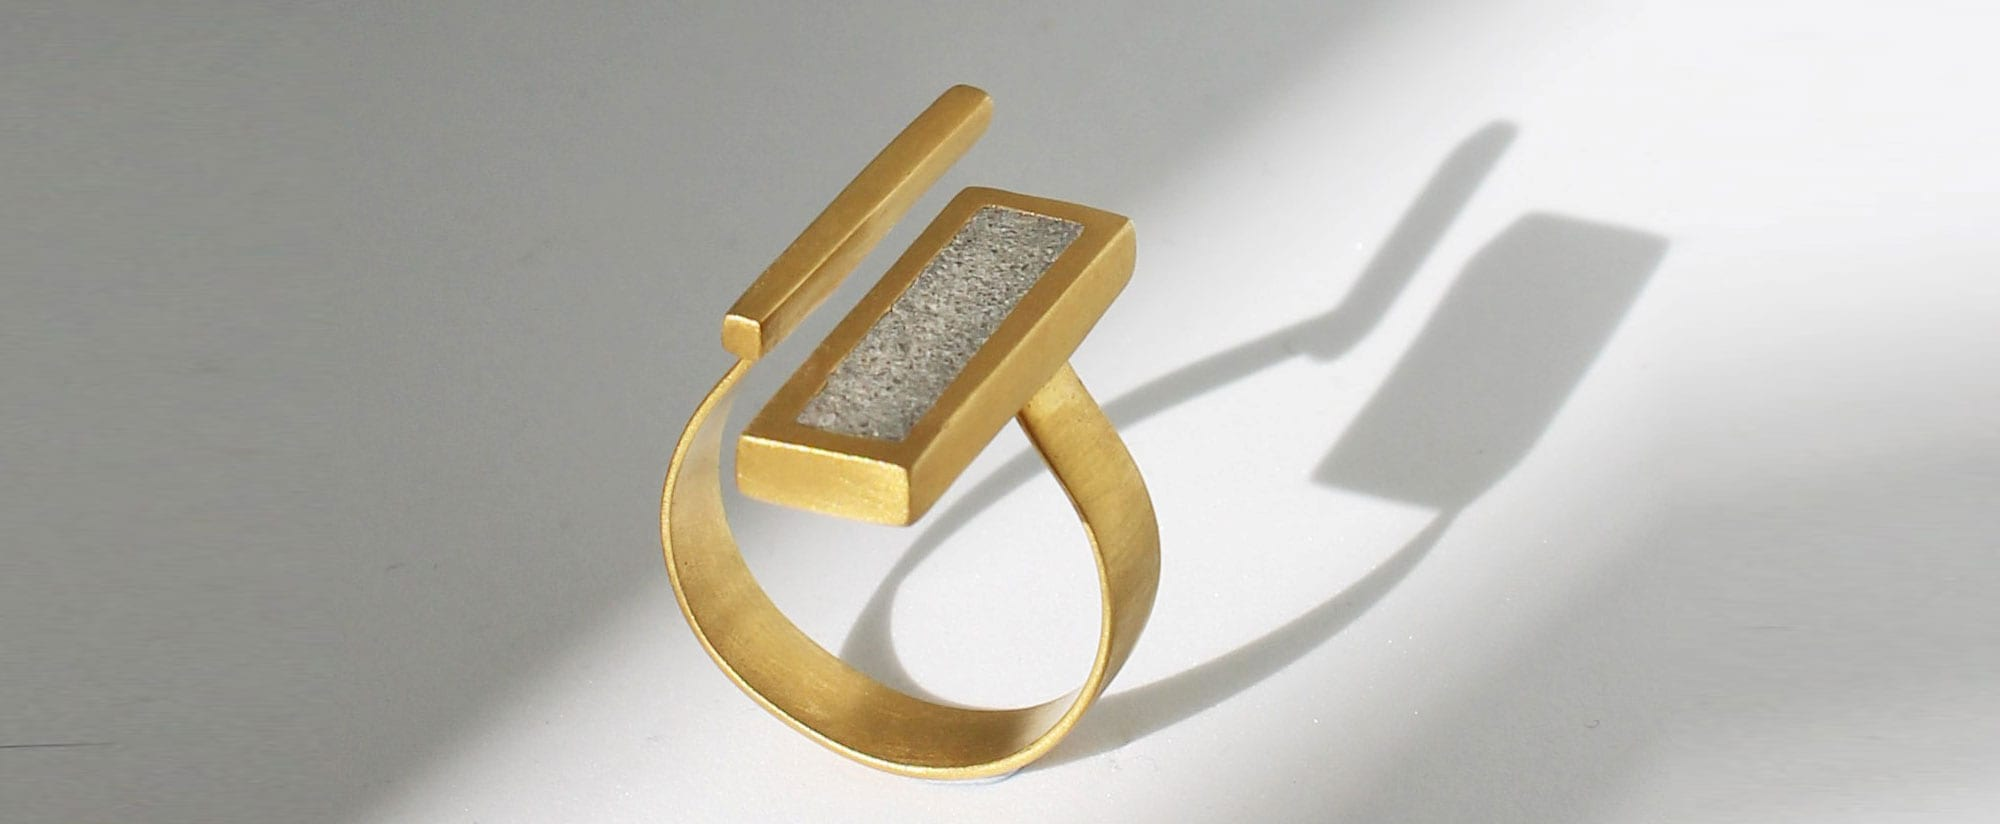 Rectangles-Adjustable-Concrete-Ring-in-Gold-by-BAARA-Jewelry1 8.18.40